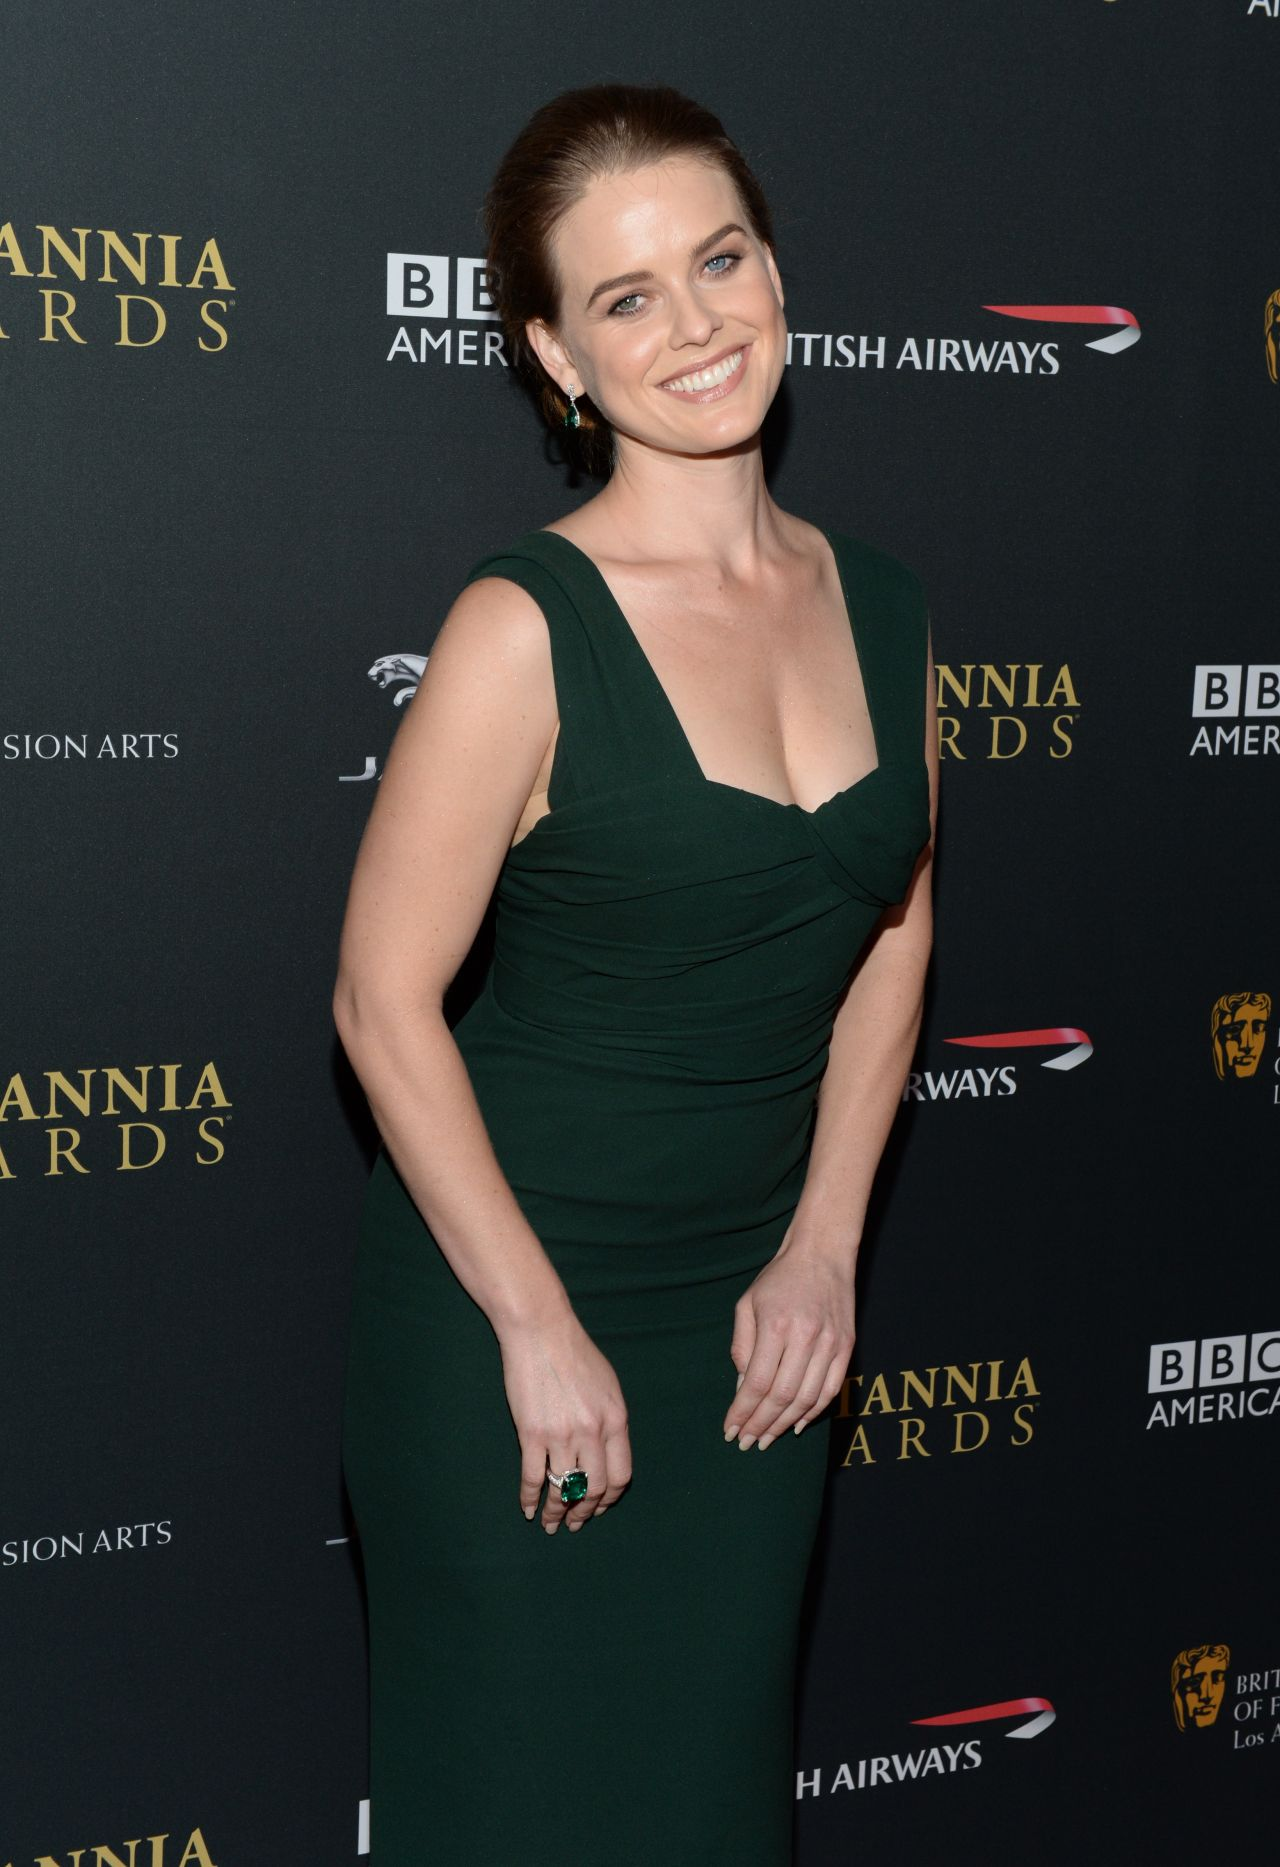 Alice Eve Red Carpet Photos - 2013 BAFTA LA Jaguar Britannia Awards